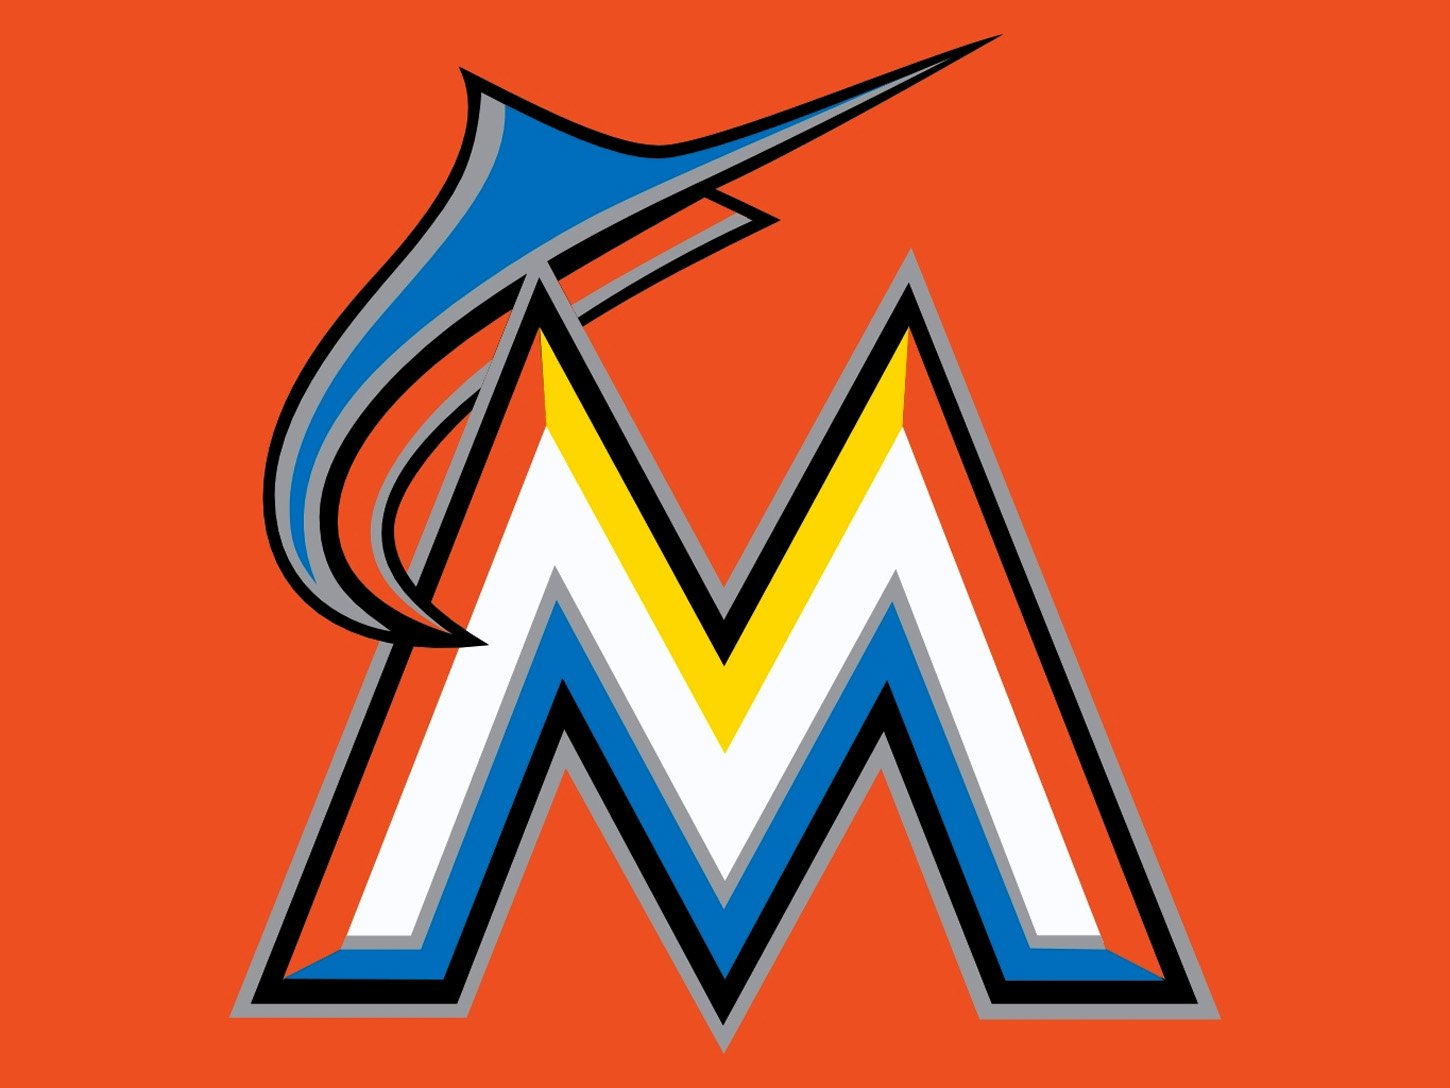 miami marlins logo  miami marlins symbol  meaning  history dodgers logo vector art dodgers logo vector free